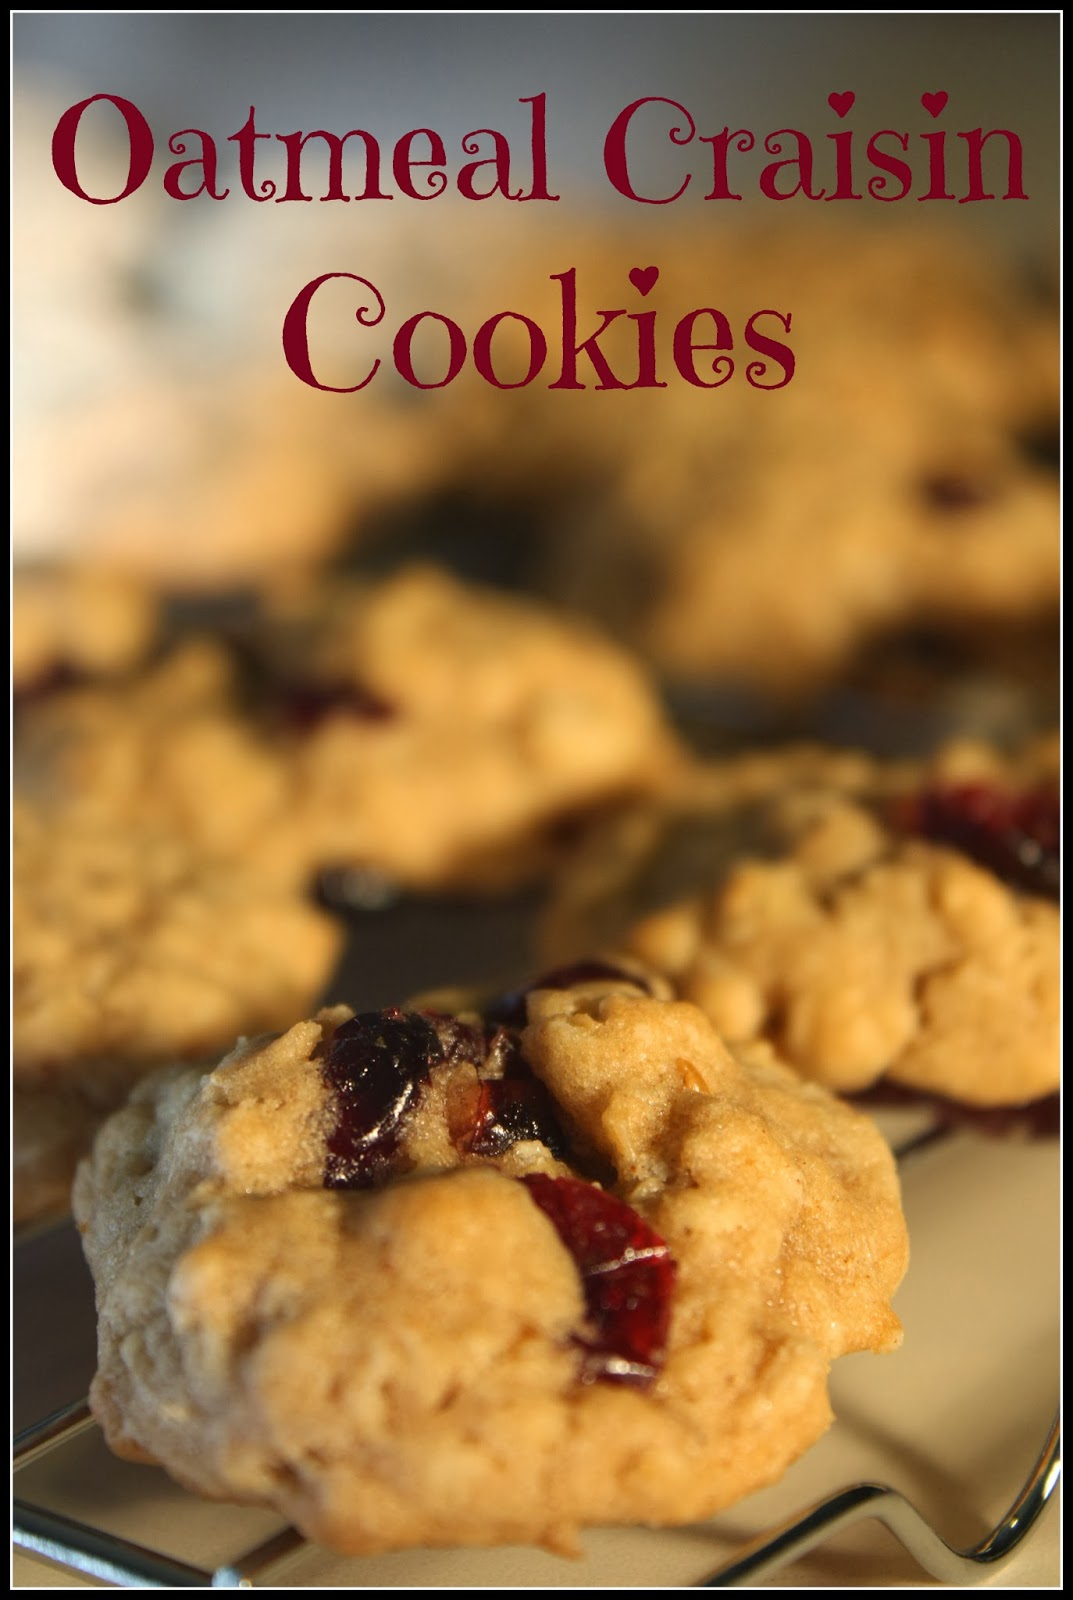 ... oatmeal cookie recipe is that the oatmeal to cookie batter ratio is